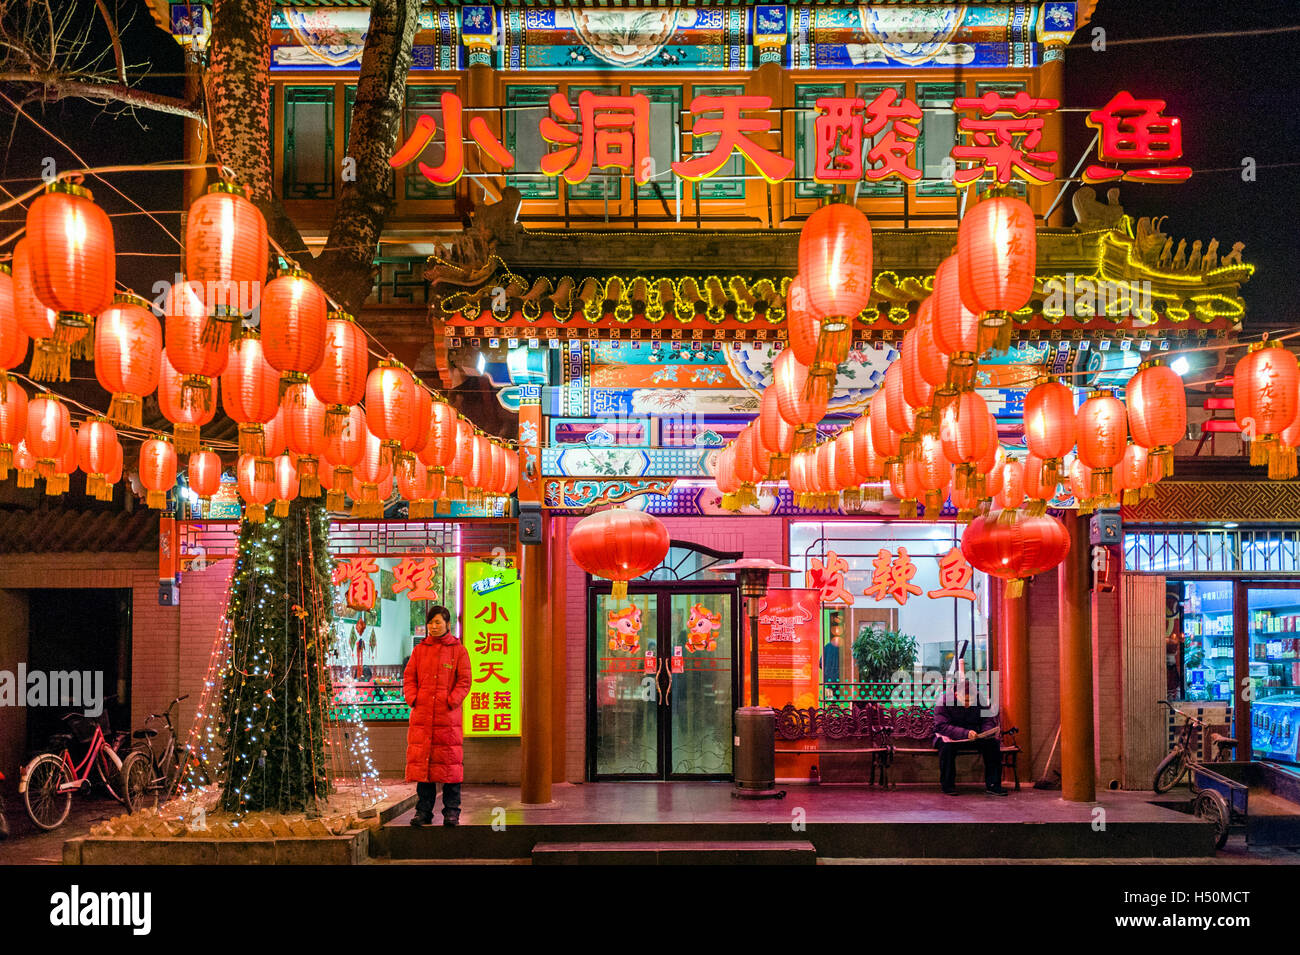 Night view of Chinese restaurant decorated with red lanterns in Beijing China - Stock Image